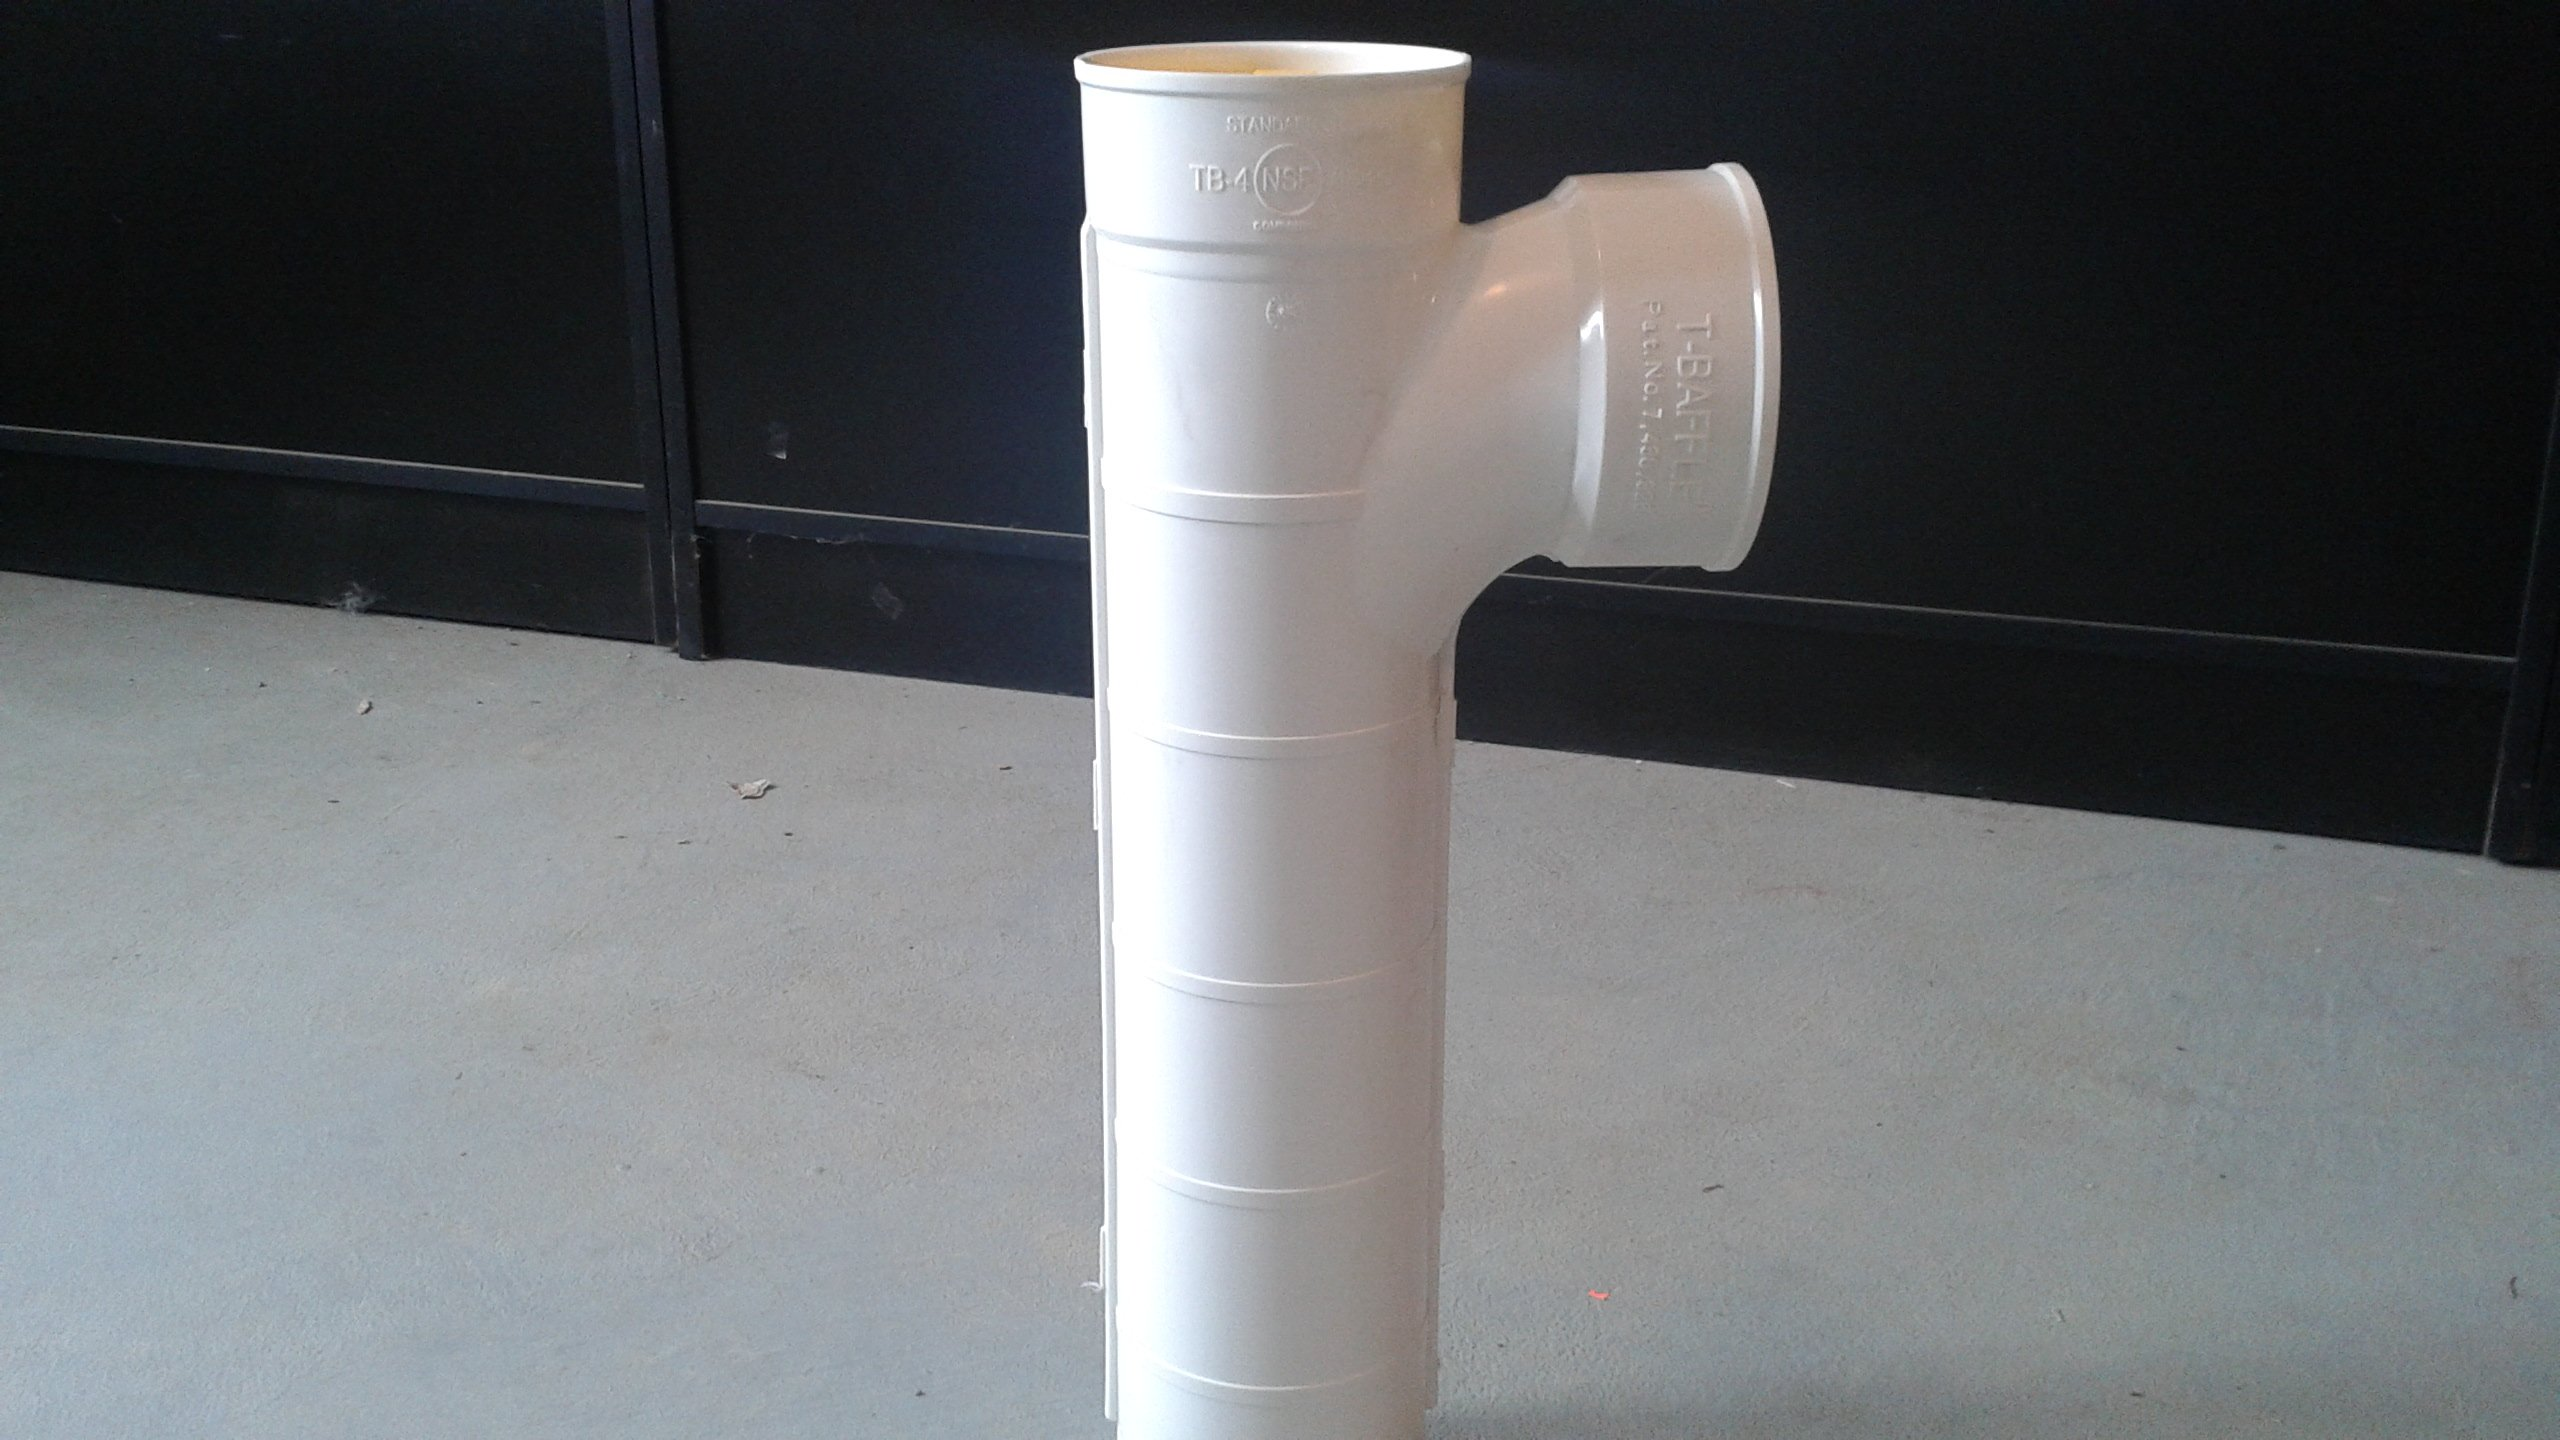 Septic Tank Tee Pipe with Filter 4 Inch - Approved in All 50 States by Bosley Septic Products